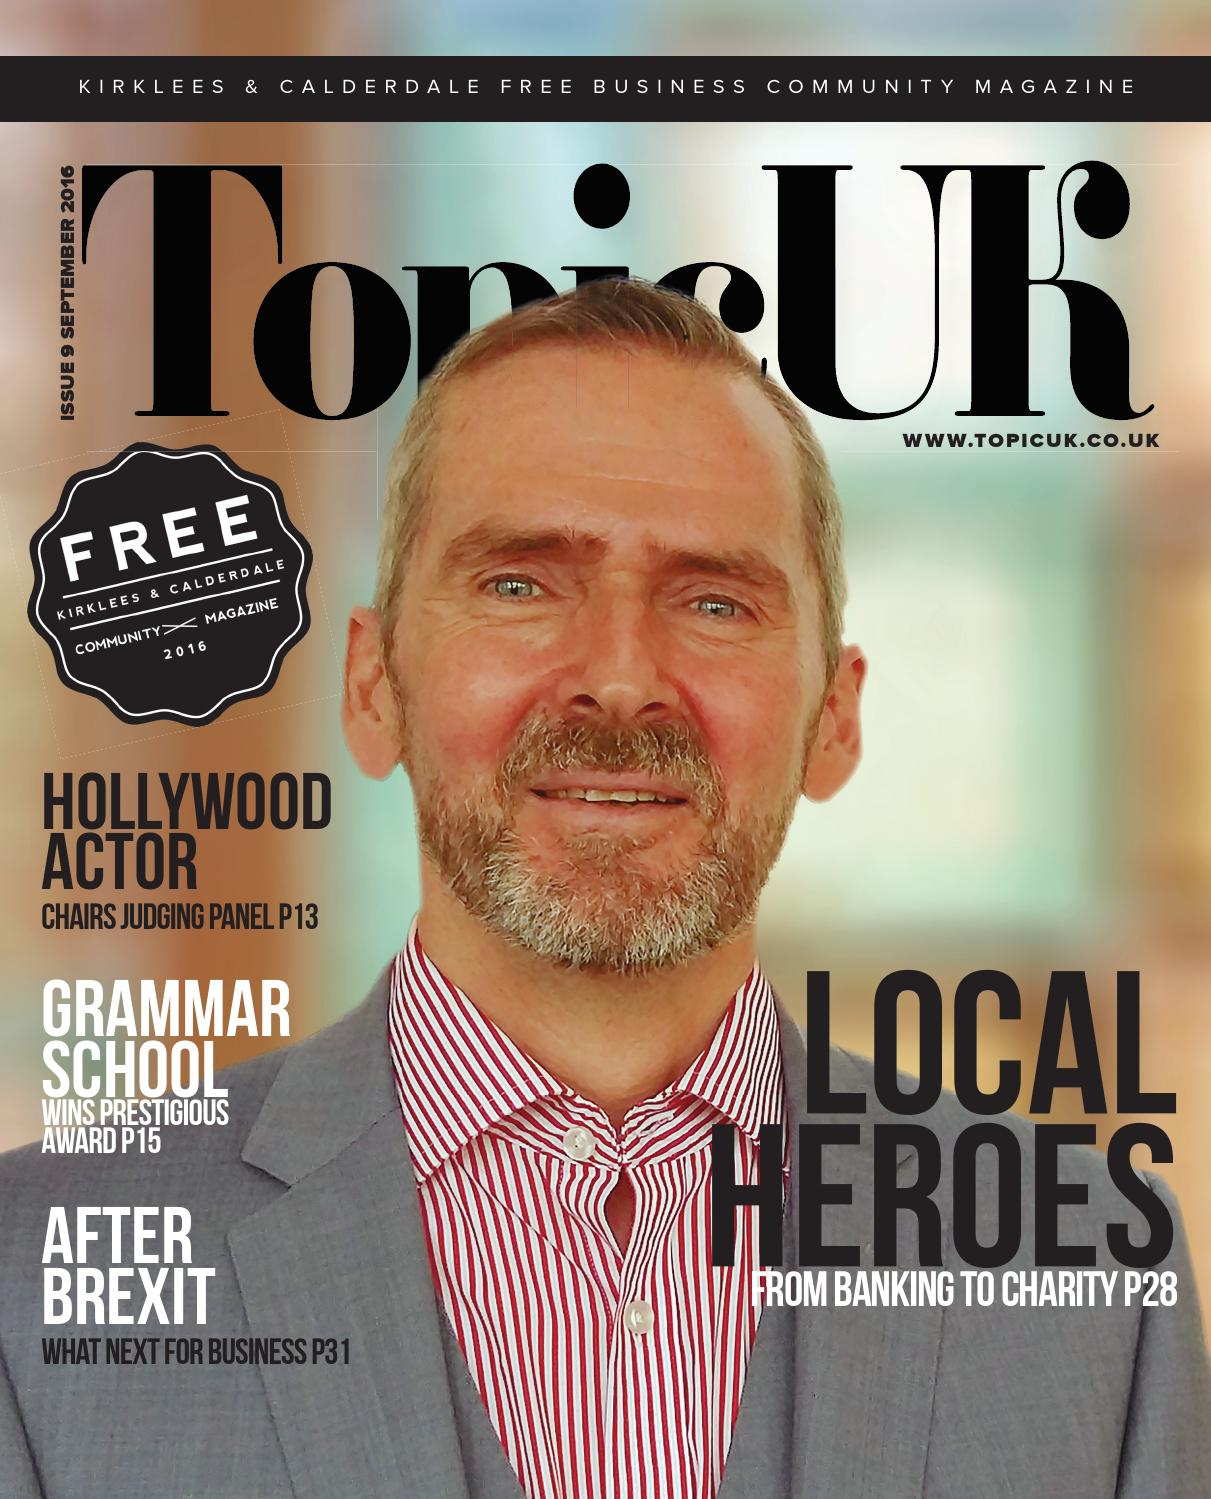 Tom Taylor Our Team Northorpe Hall Child And Family Trust Topicuk K C Sept 52pp By Topicuk Issuu